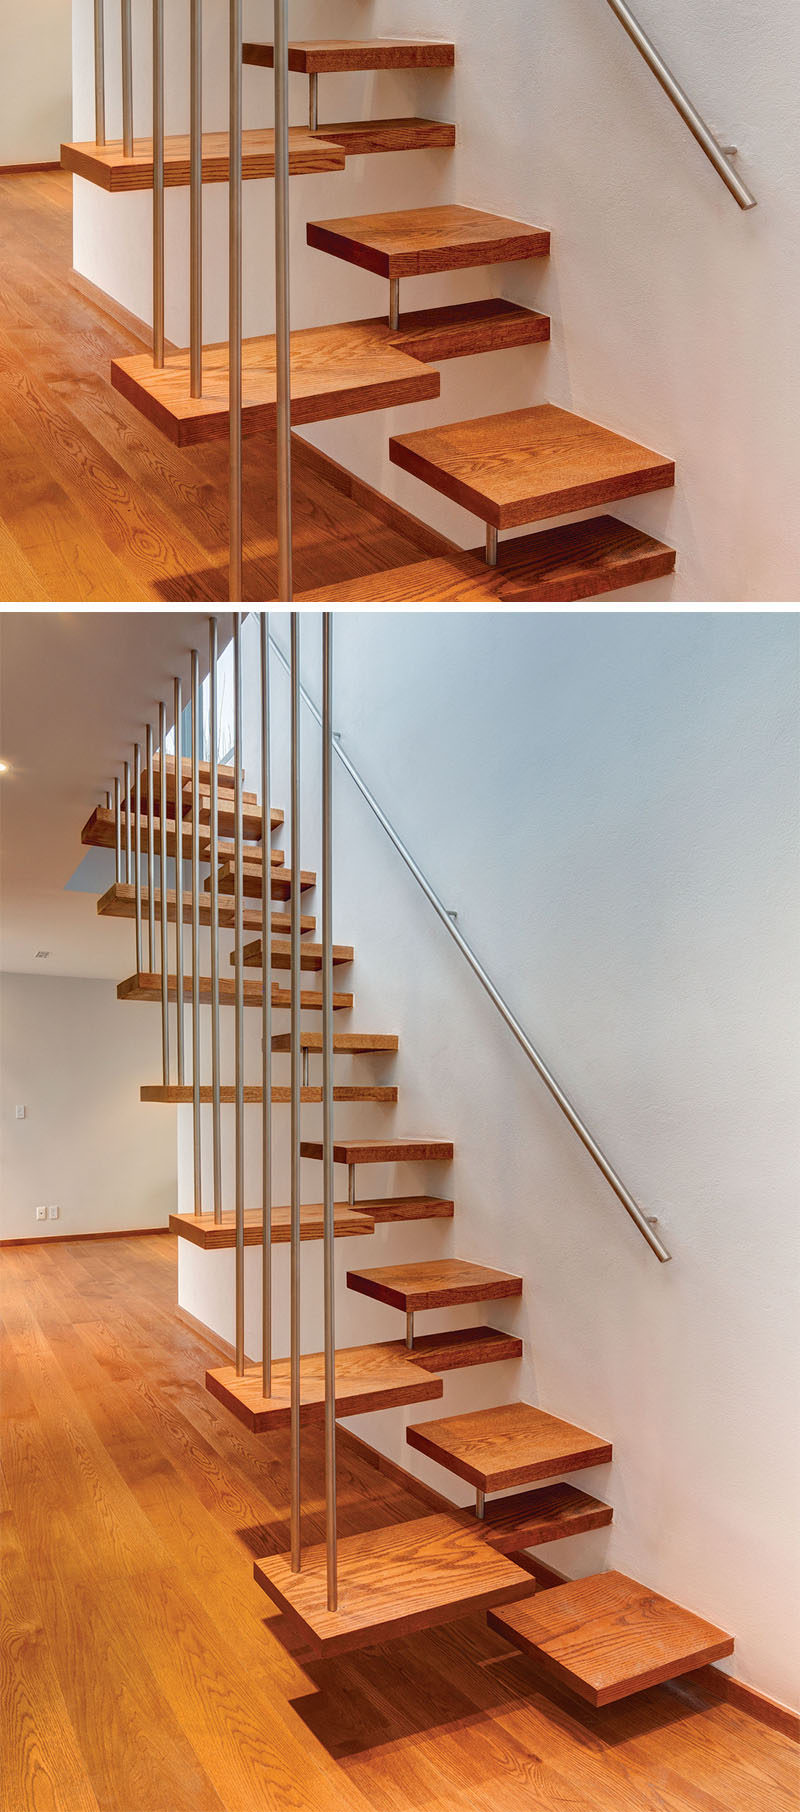 18 Examples Of Stair Details To Inspire You // If youre not careful, these wooden stairs could be a bit confusing.